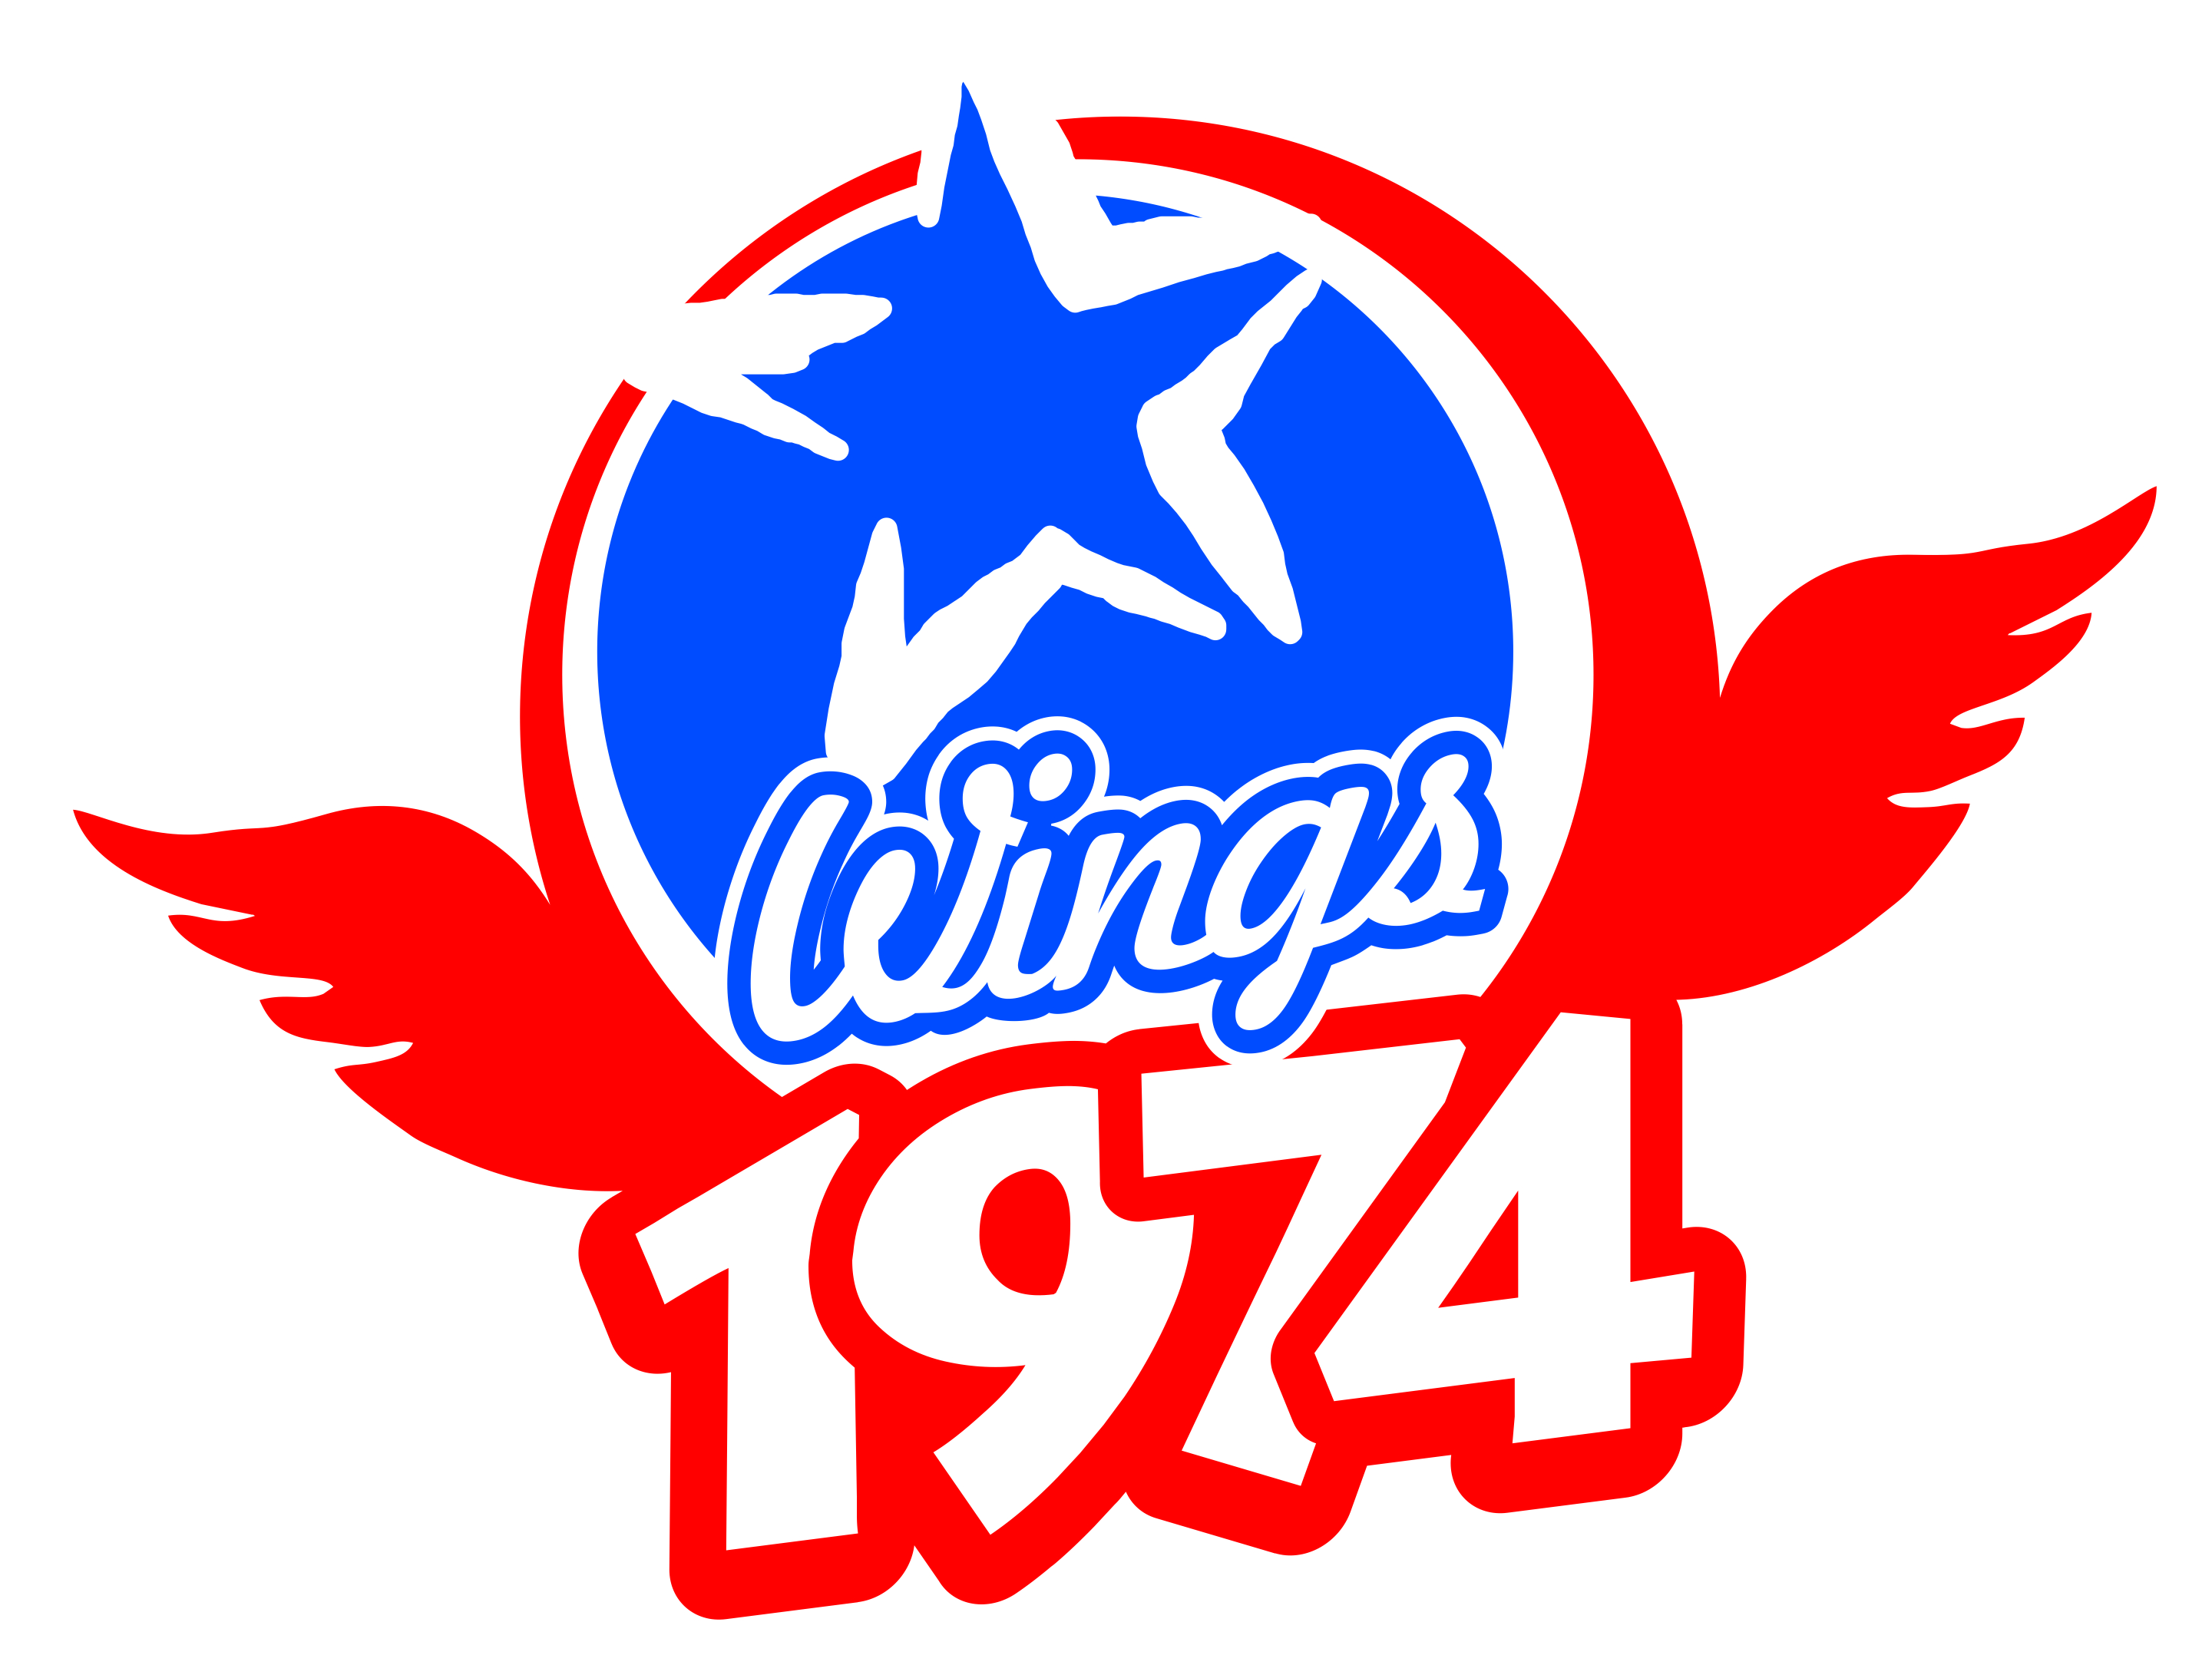 Wings 1974 Los Andes